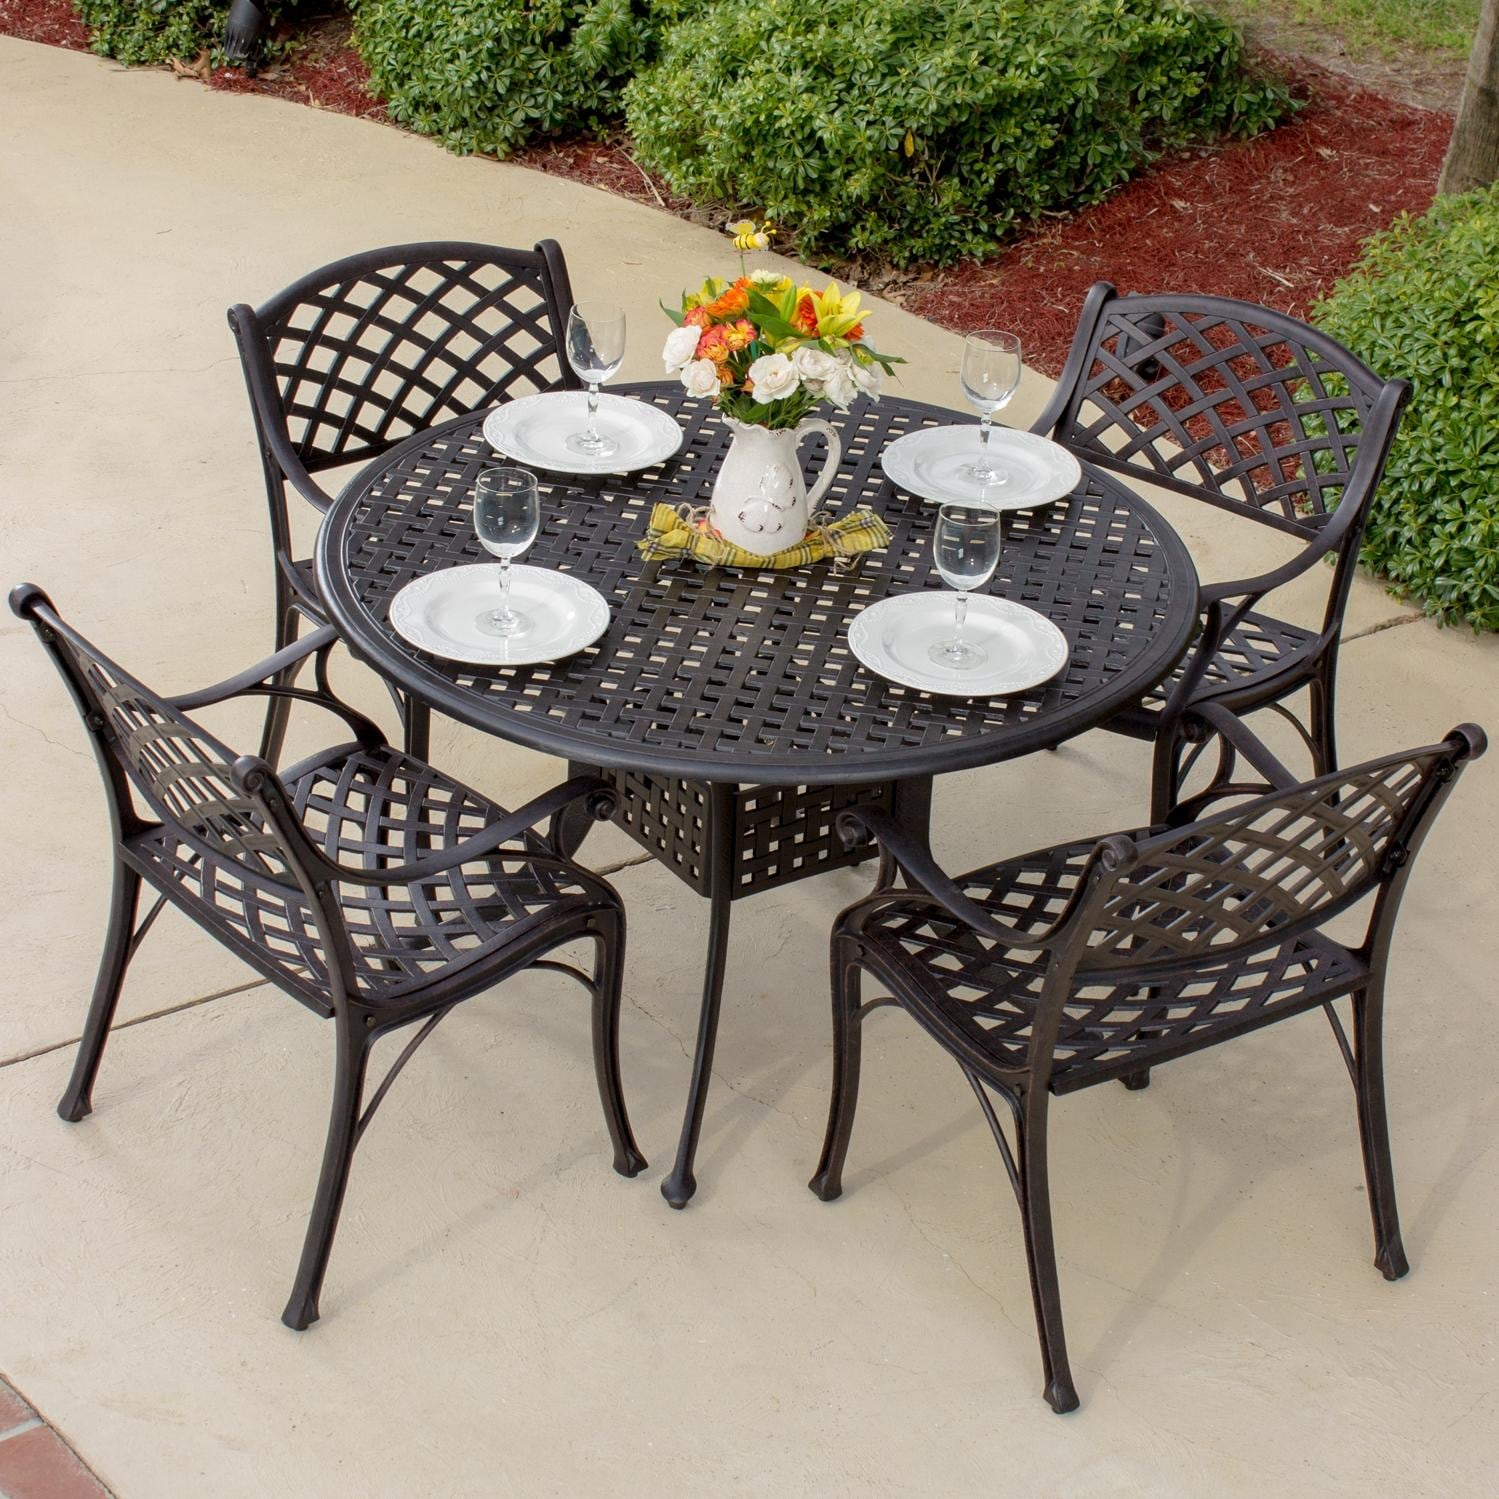 Heritage 4 Person Cast Aluminum Patio Dining Set With Round Table By Lakeview Outdoor Designs